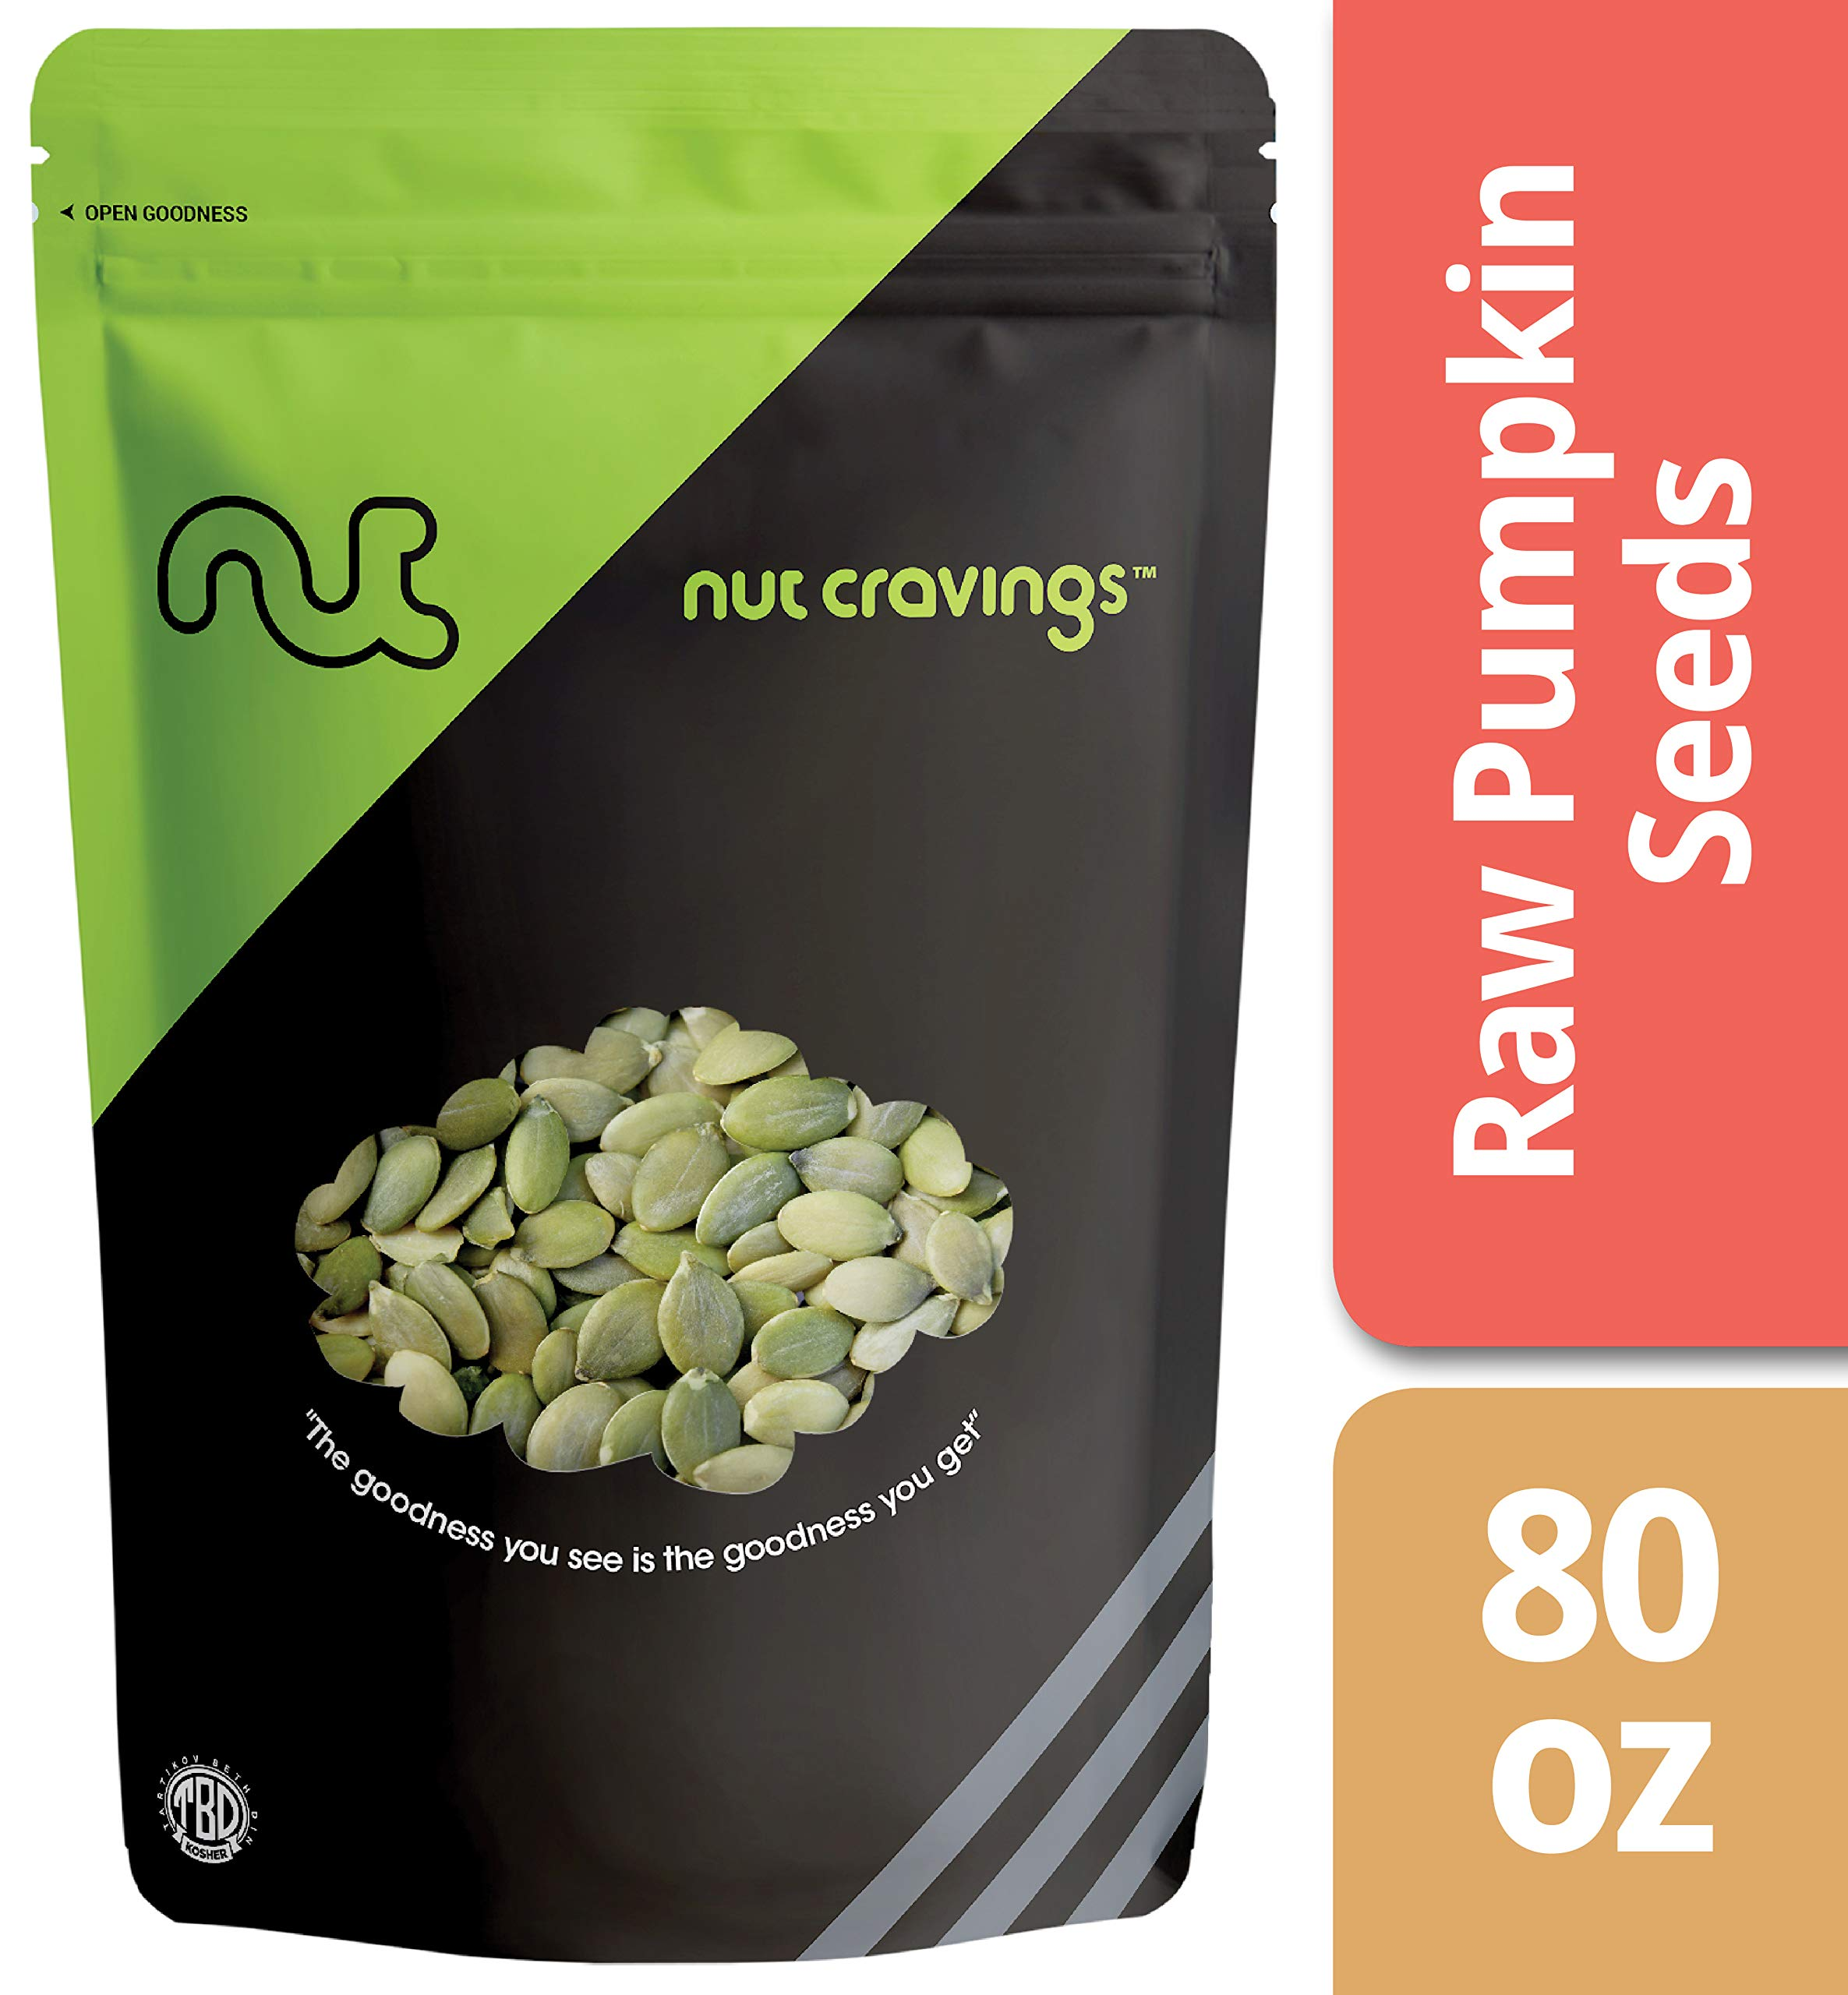 Nut Cravings - Raw Organic Pumpkin Seeds (5 Pounds) - Raw Pepitas With No Shell - 80 Ounce by Nut Cravings